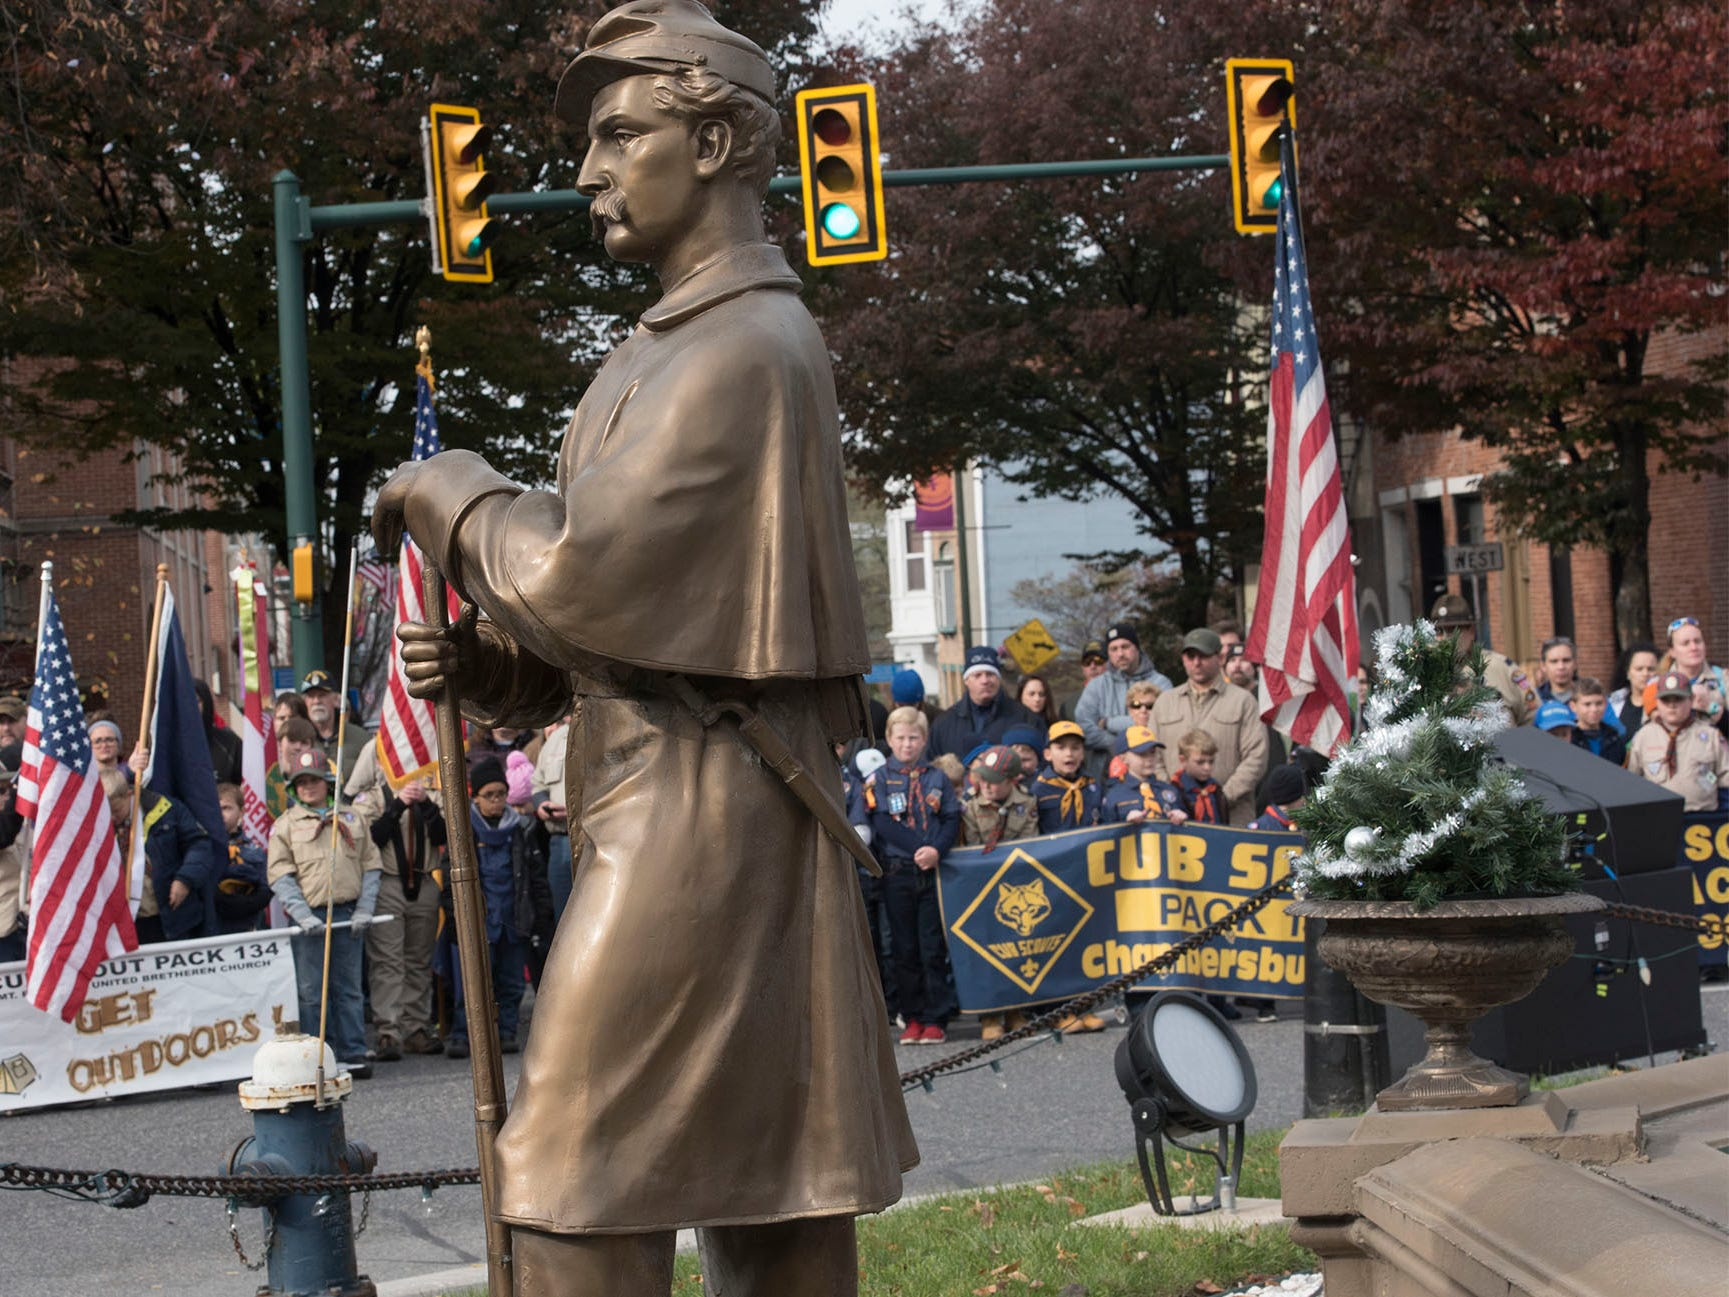 Thge Verterans Day Parade and ceremony to honor members of the military was held Monday, November 12, 2018 along Lincoln Way East and at Memorial Square.